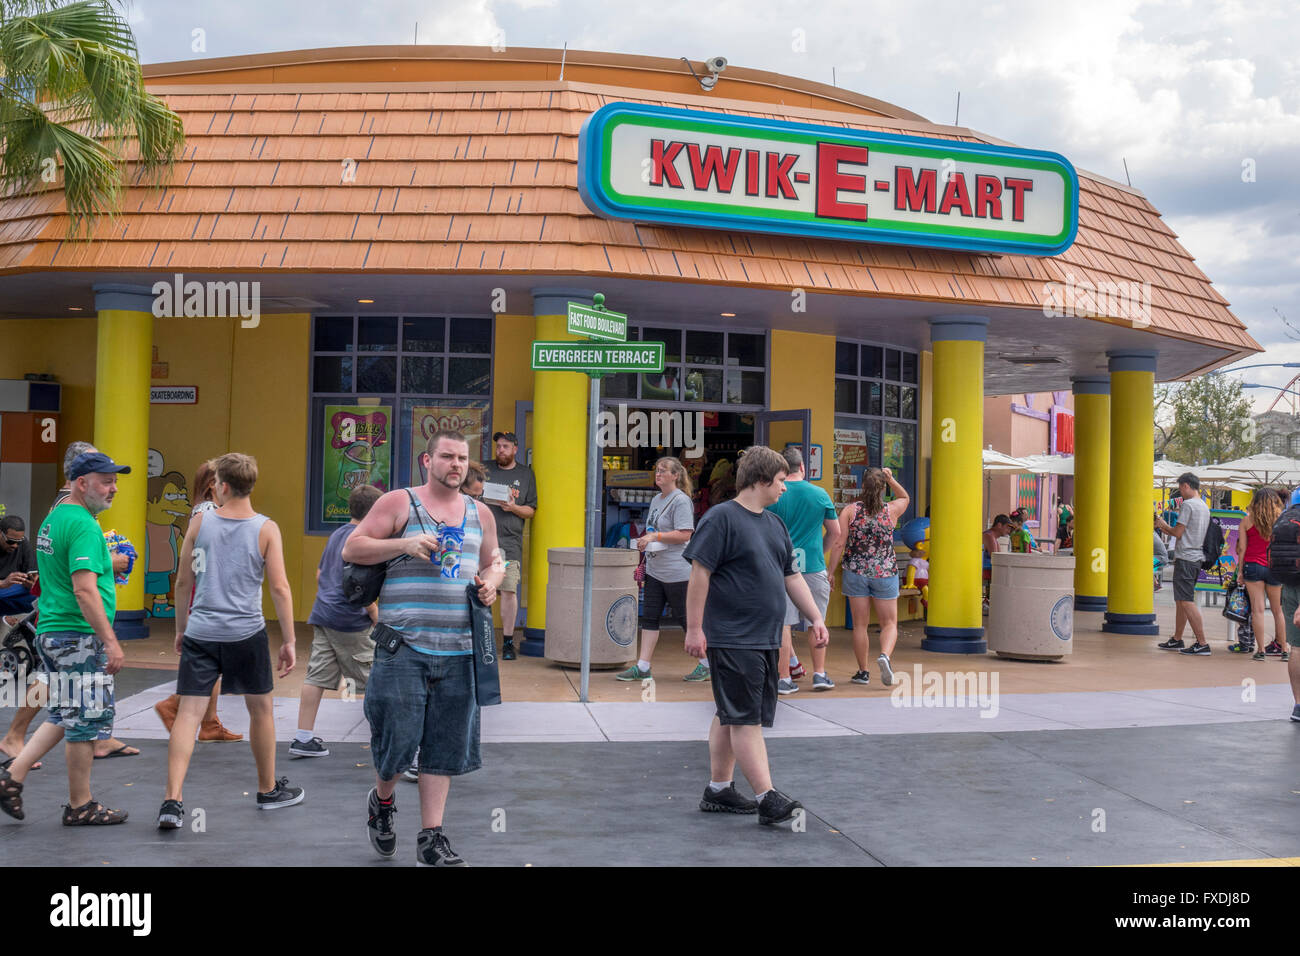 Life Size Replica Of The Kwik-E-Mart From The Simpsons TV Show At Universal Studios Orlando Florida - Stock Image